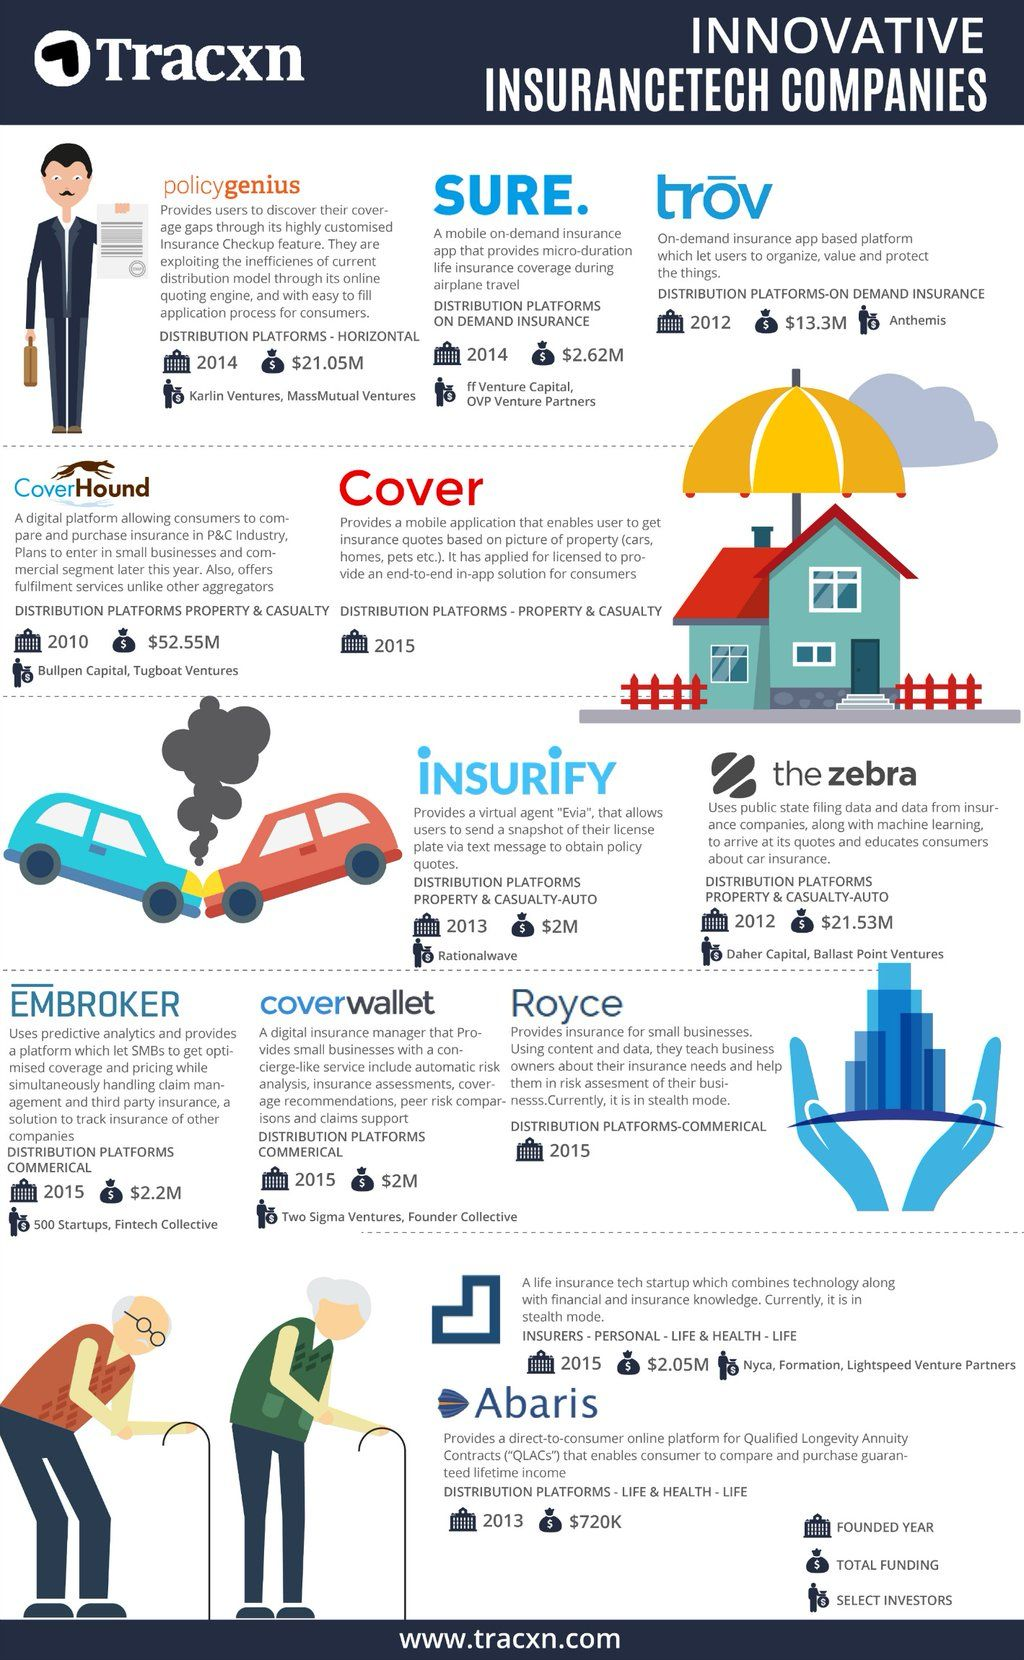 Insurtech Innovation Insurance Property And Casualty